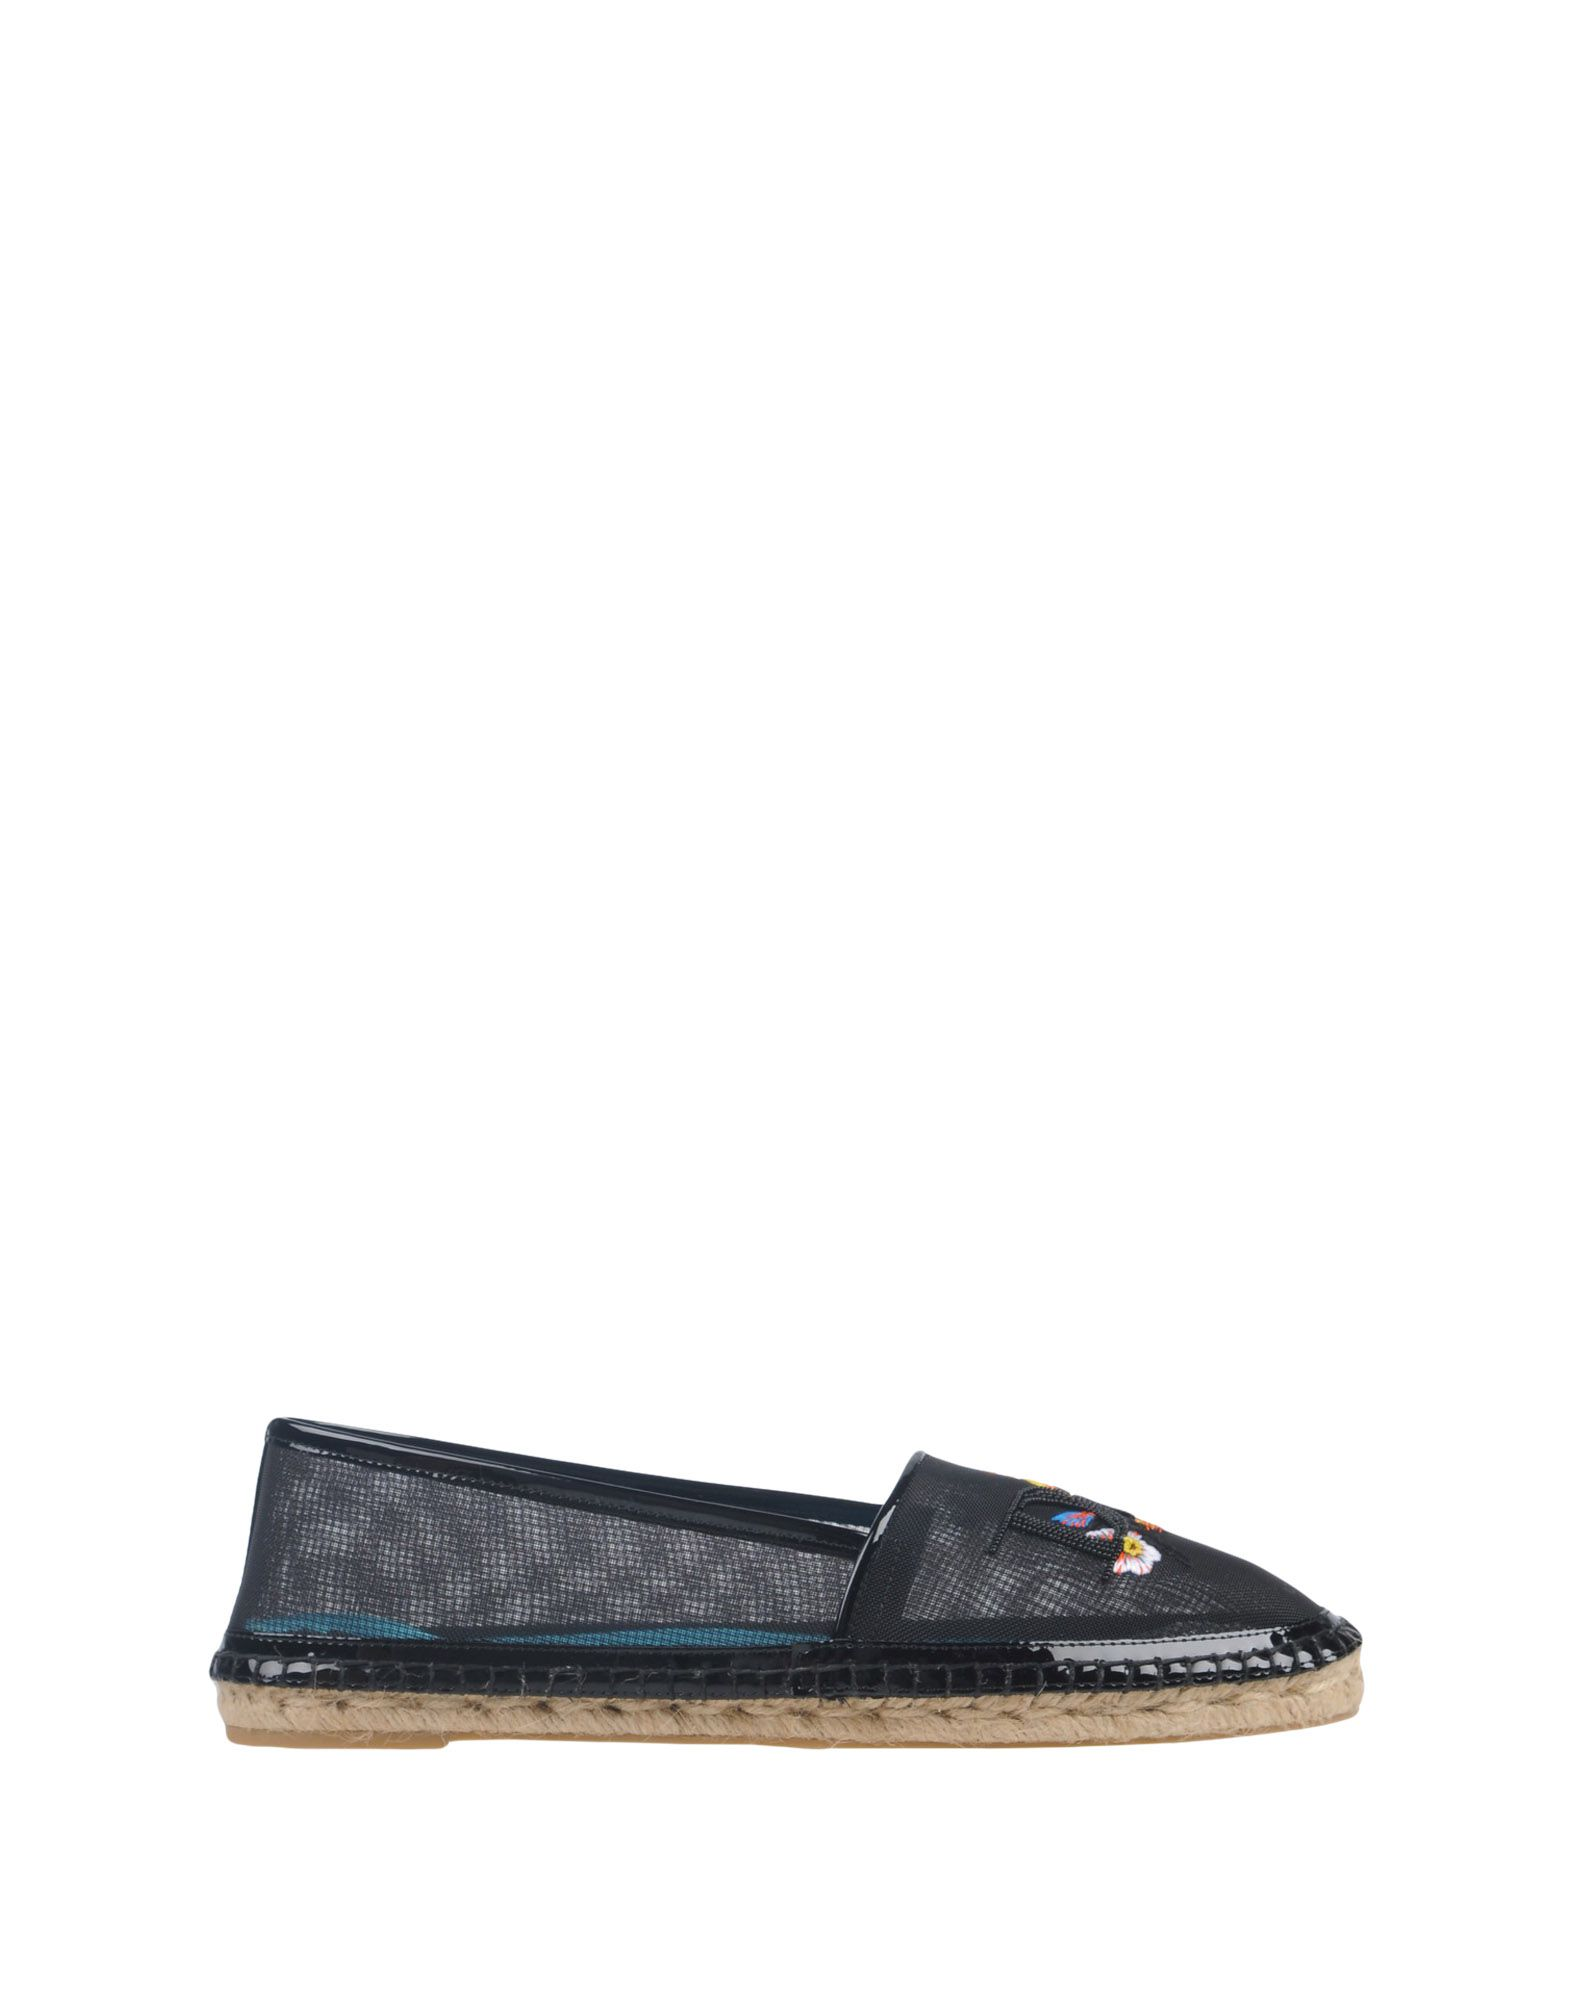 CHAUSSURES - MocassinsLucy Choi London Yvt5aew